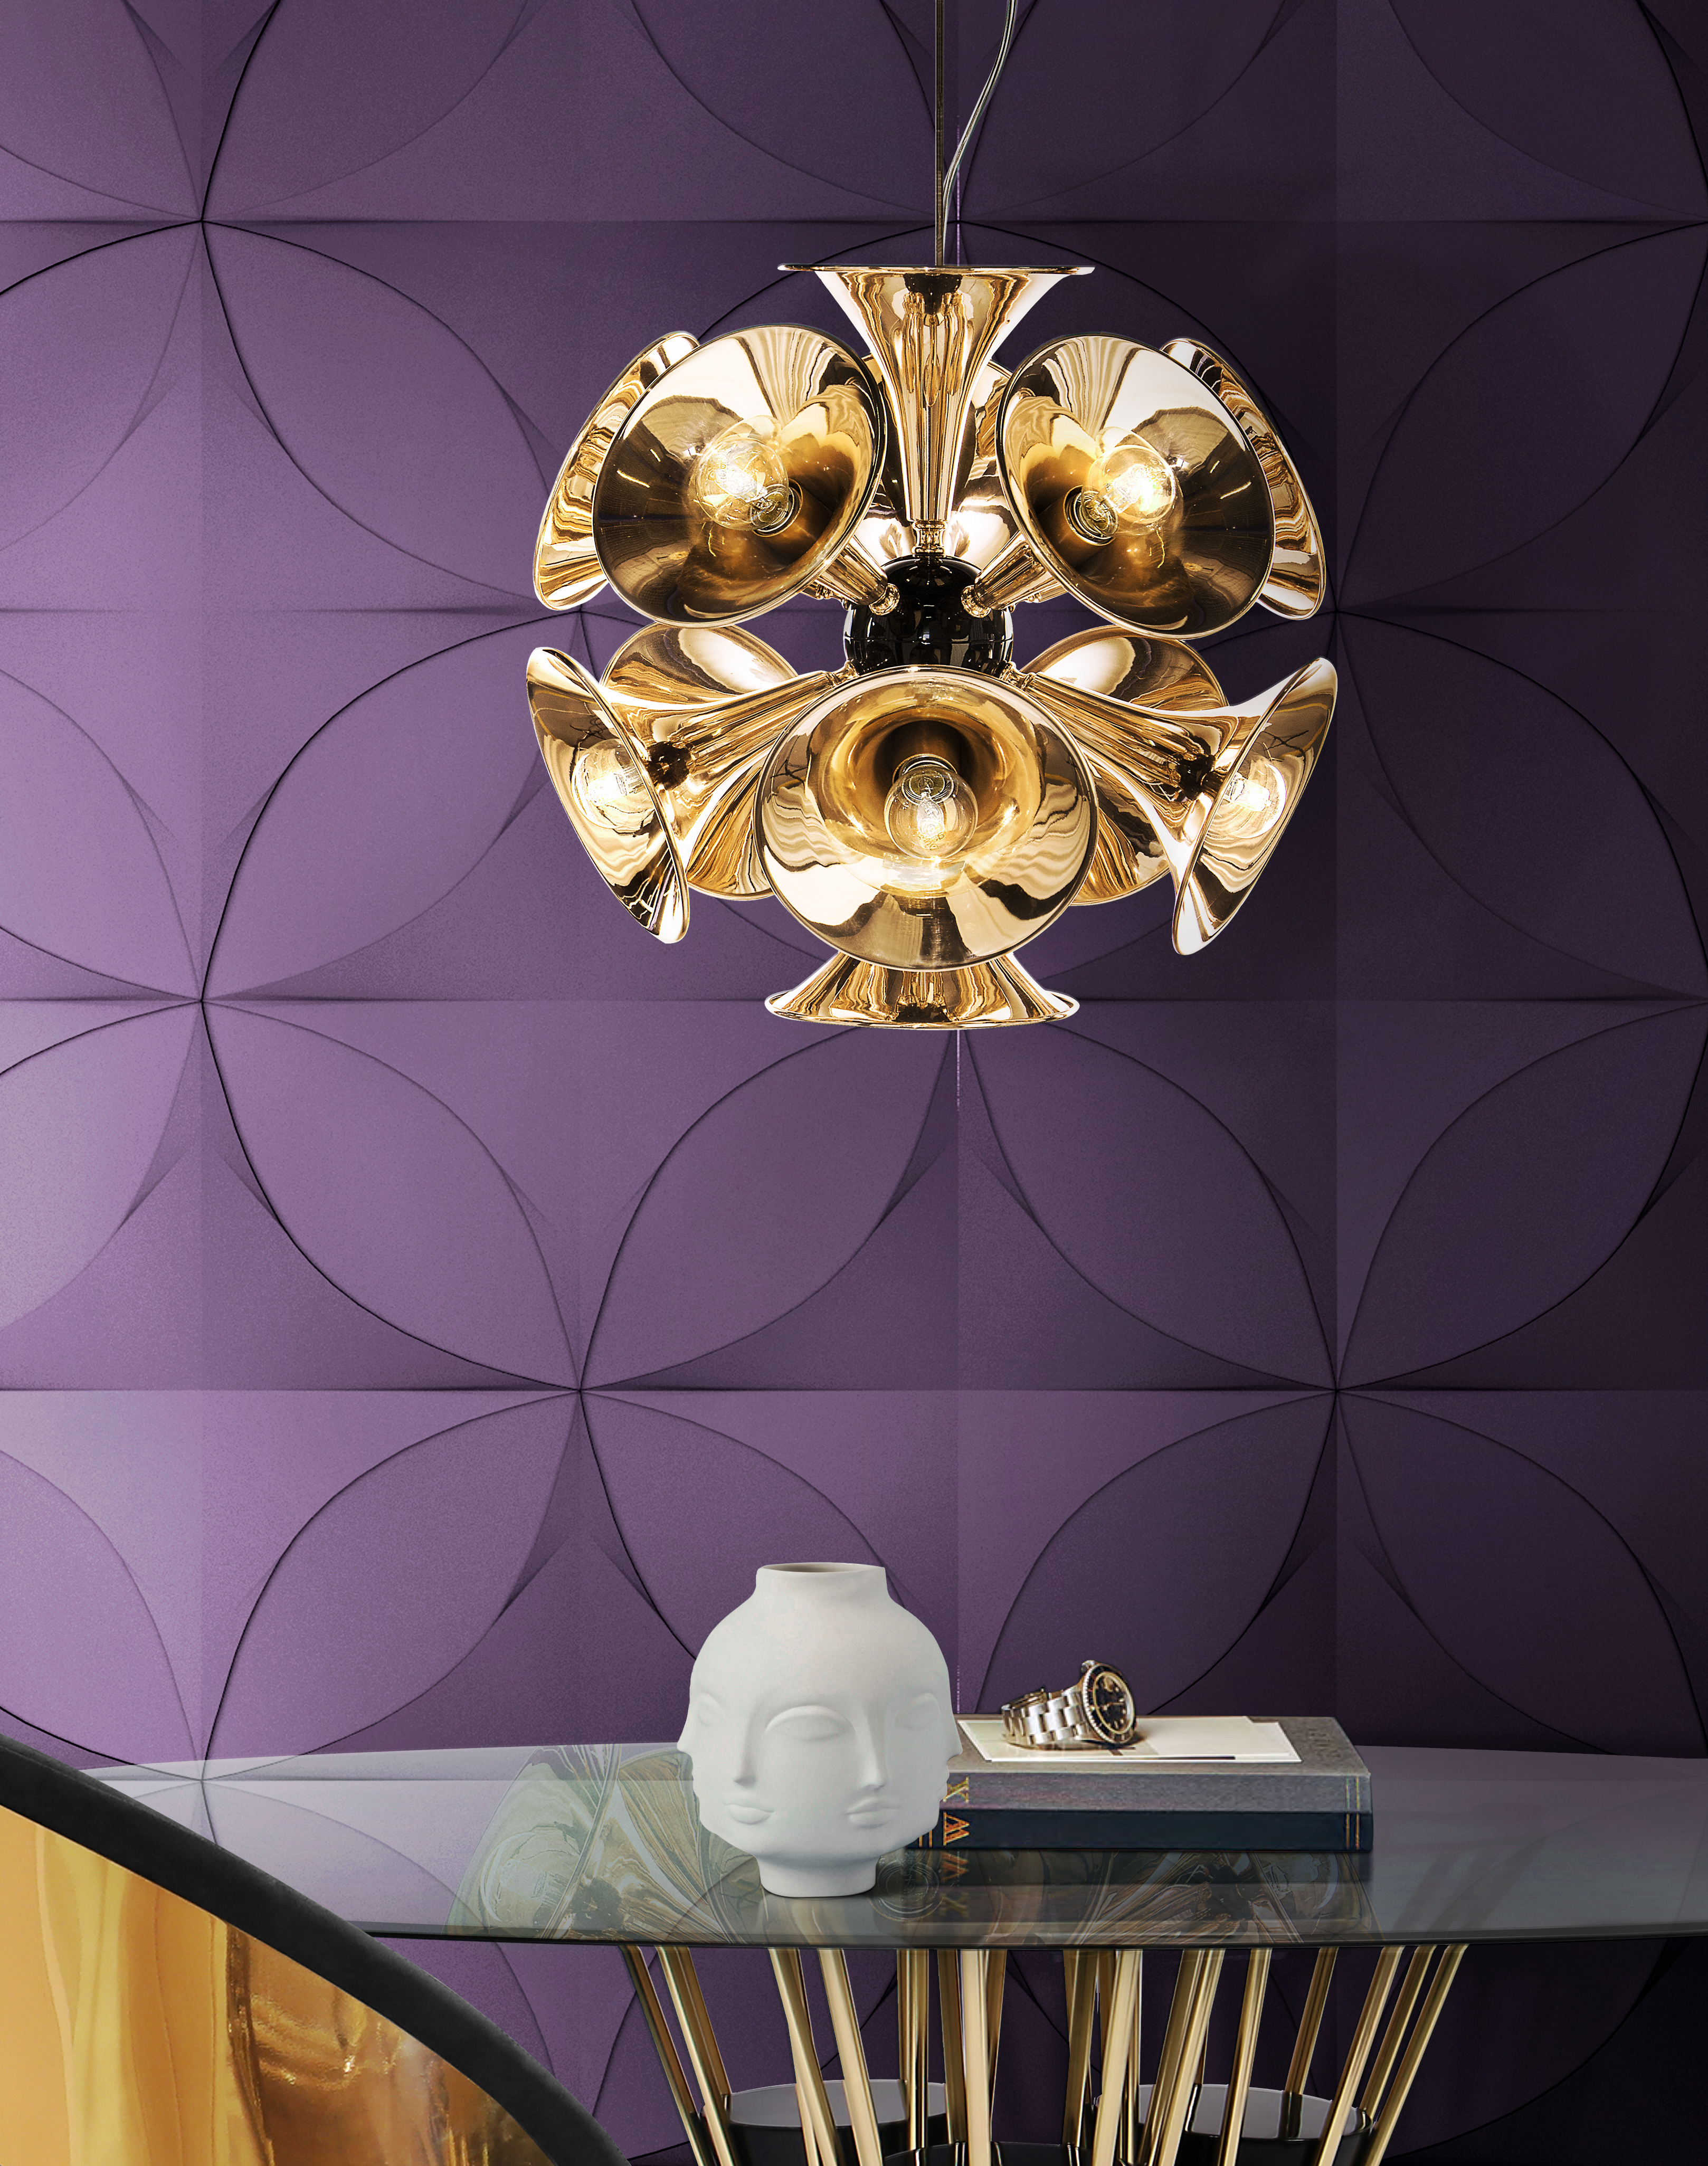 7 Essential Ways to Make UltraViolet the Star of Your Home Decor_1 ultra violet 7 Essential Ways to Make Ultra Violet the Star of Your Home Decor 5 Essential Ways to Make Ultra Violet the Star of Your Home Decor 3